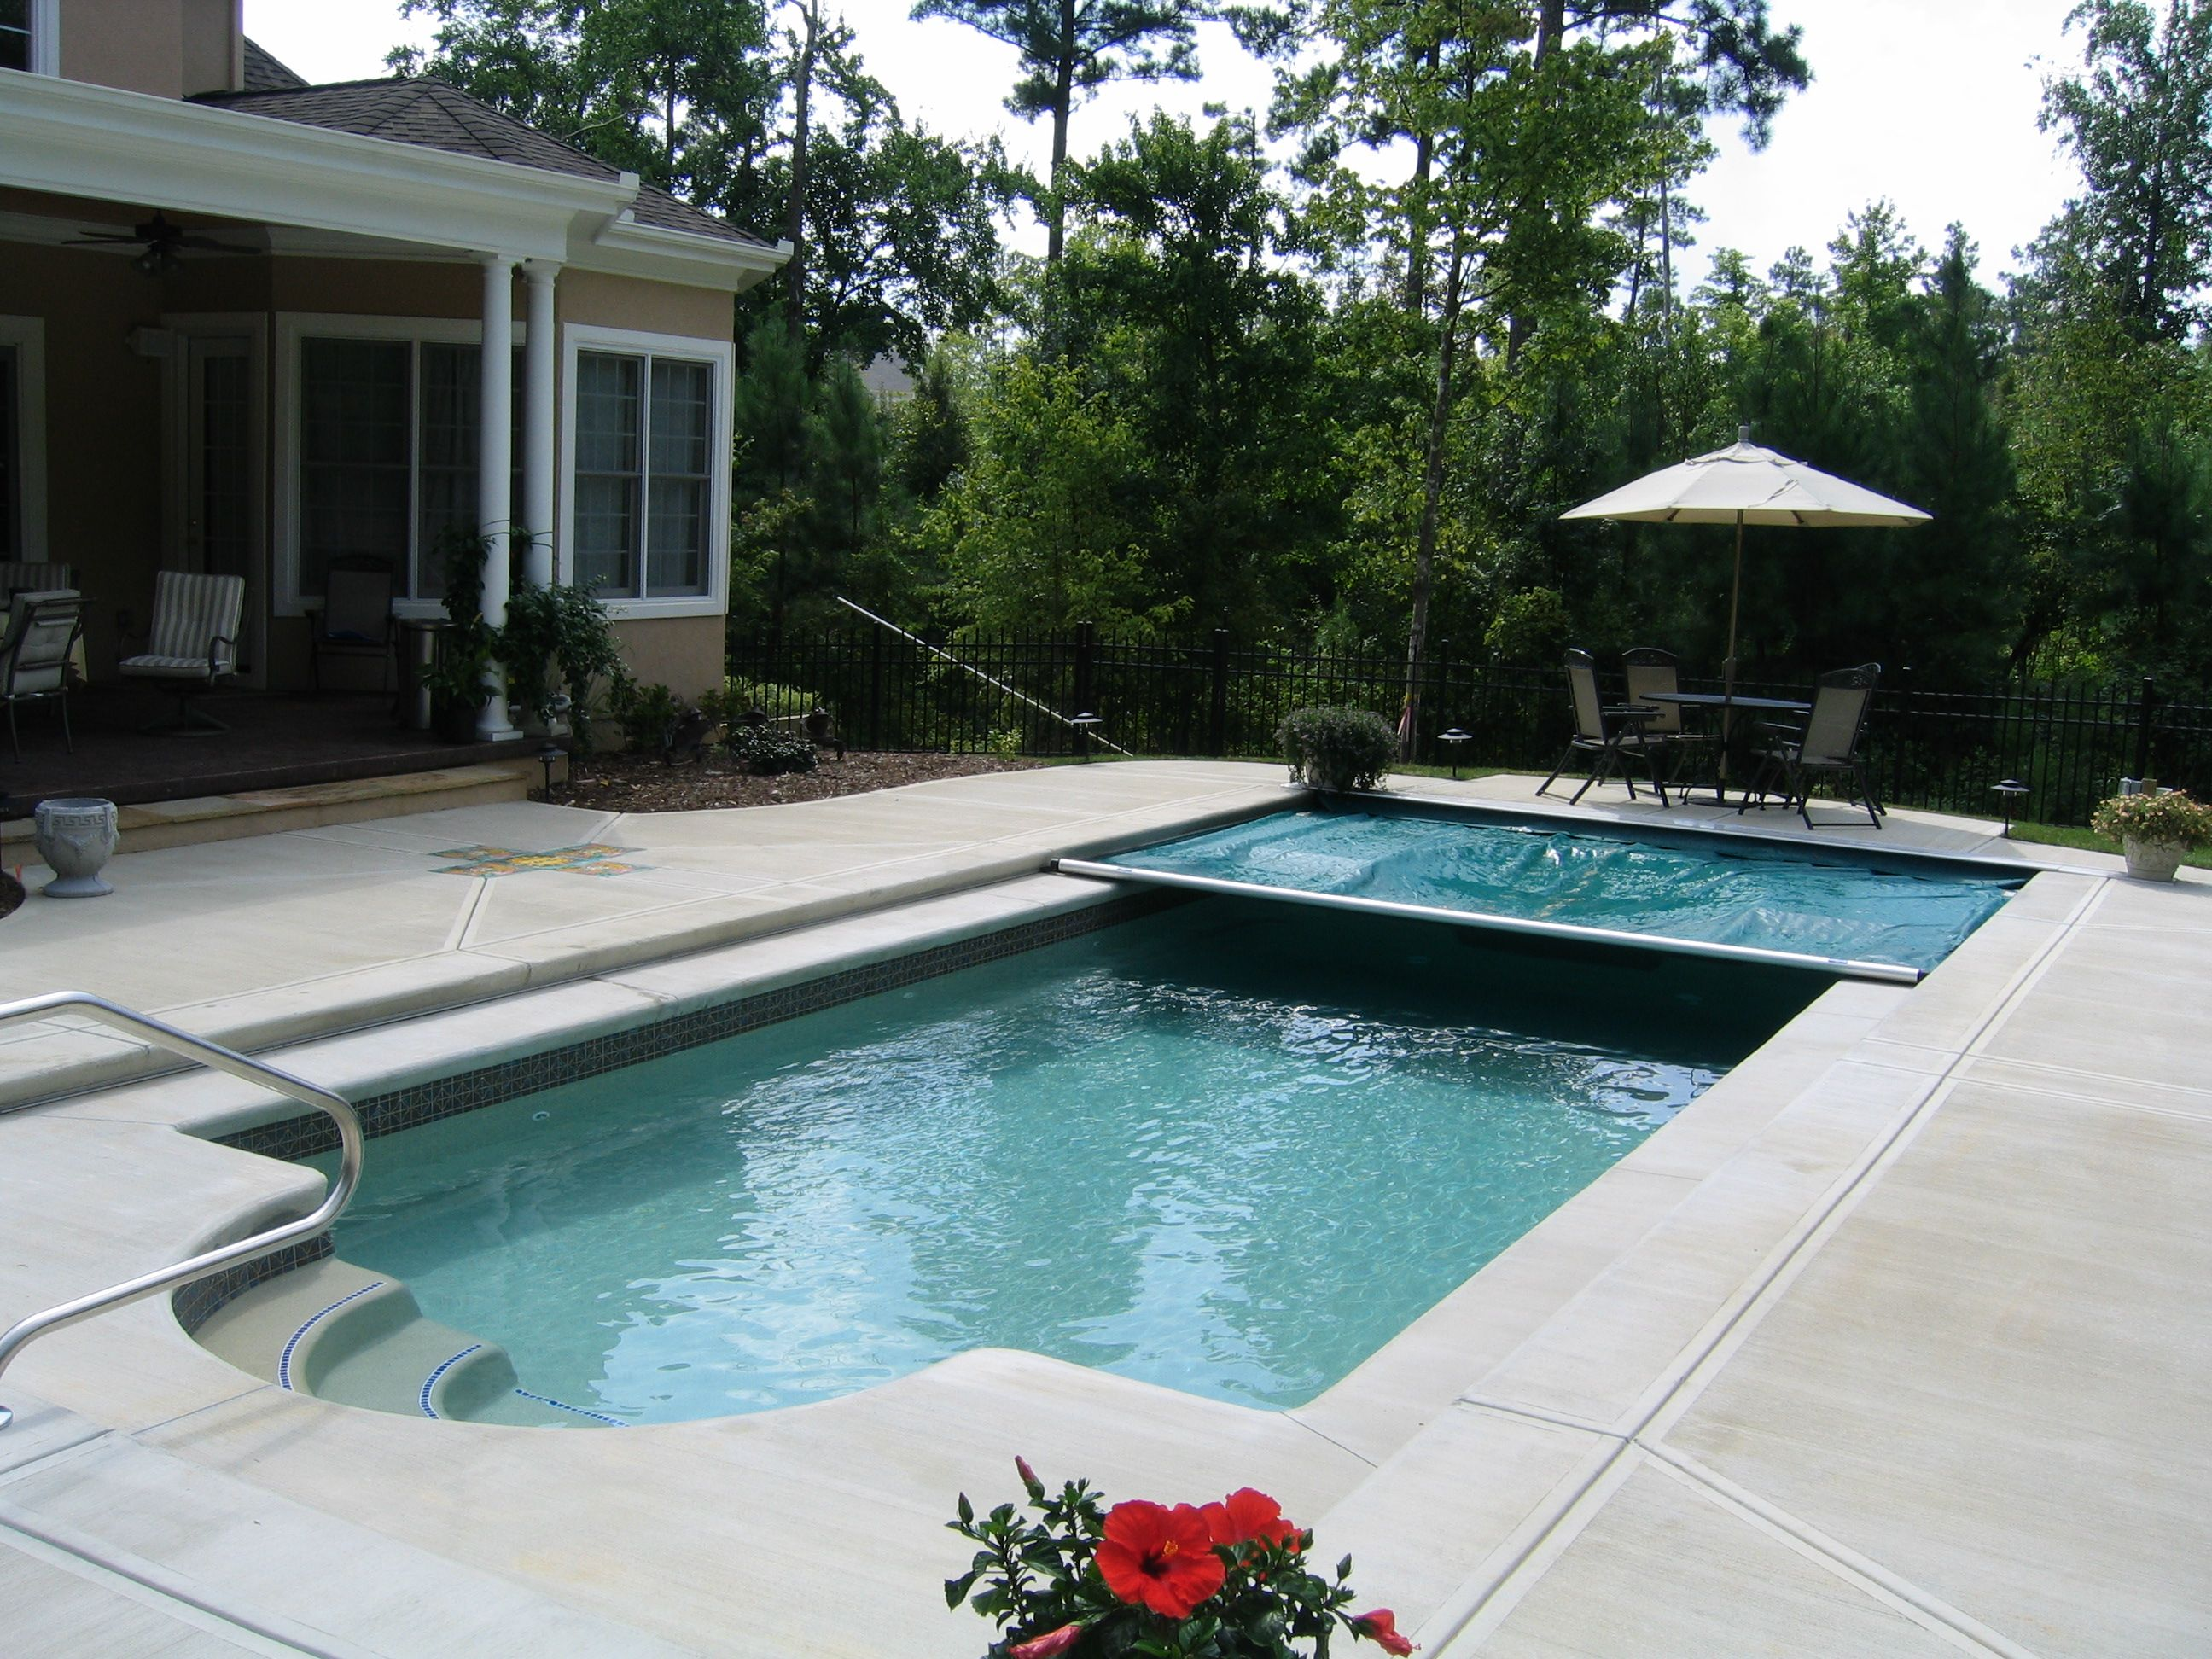 Fiberglass inground pool with pool cover partially for Fiberglass pools vs gunite pools